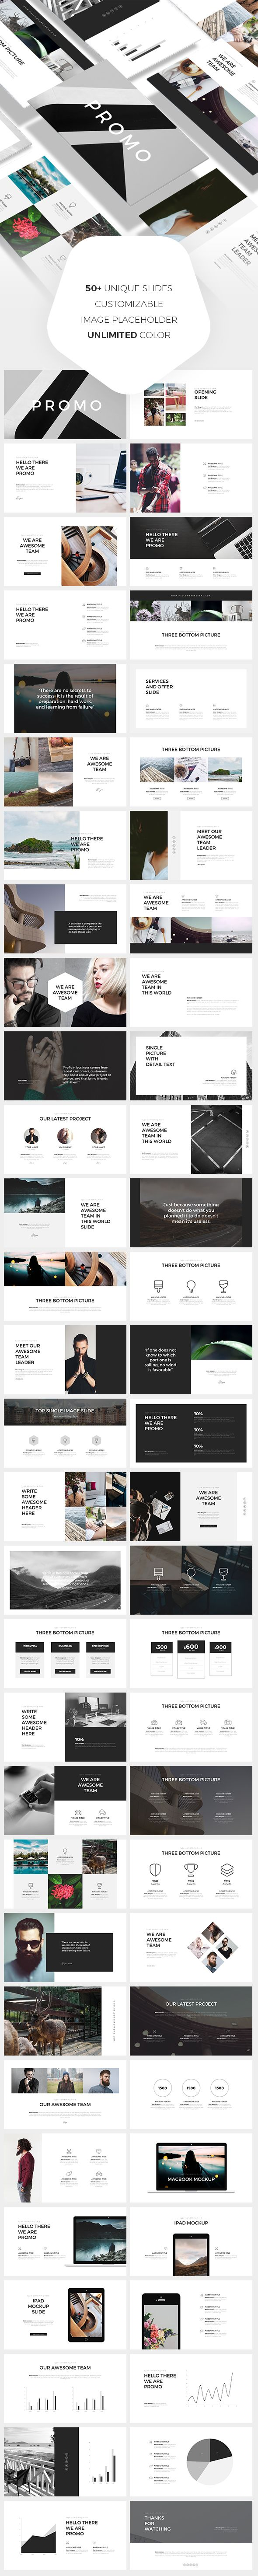 Promo PowerPoint Template. Download: https://graphicriver.net/item/promo-powerpoint-template/18675544?ref=thanhdesign